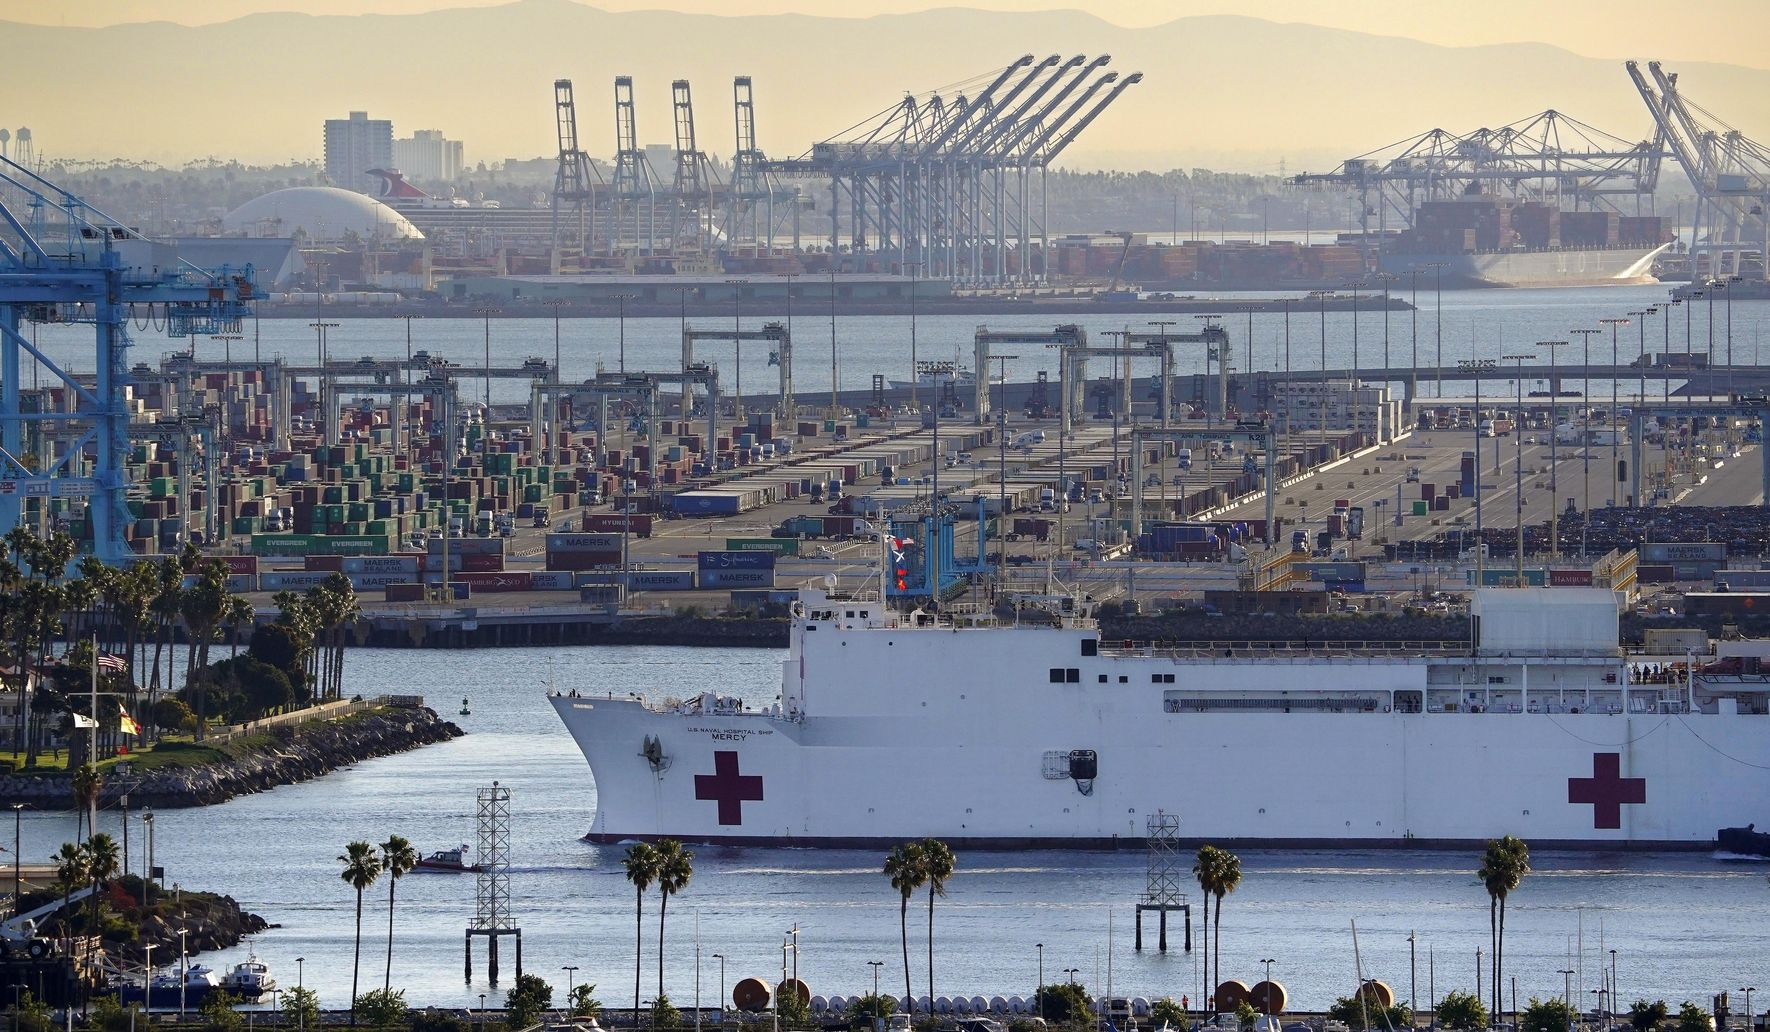 Image of article 'Crisis averted, hospital ship leaves LA; treats 77 patients'